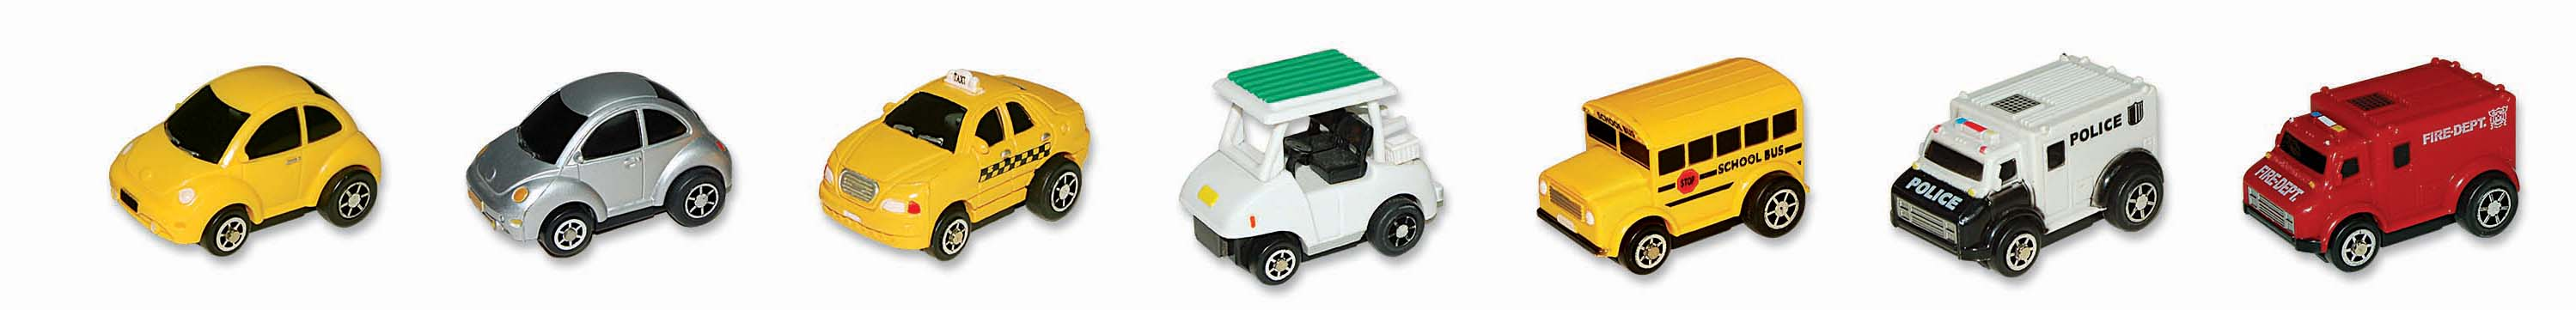 Puzzle vehicle car for children toys